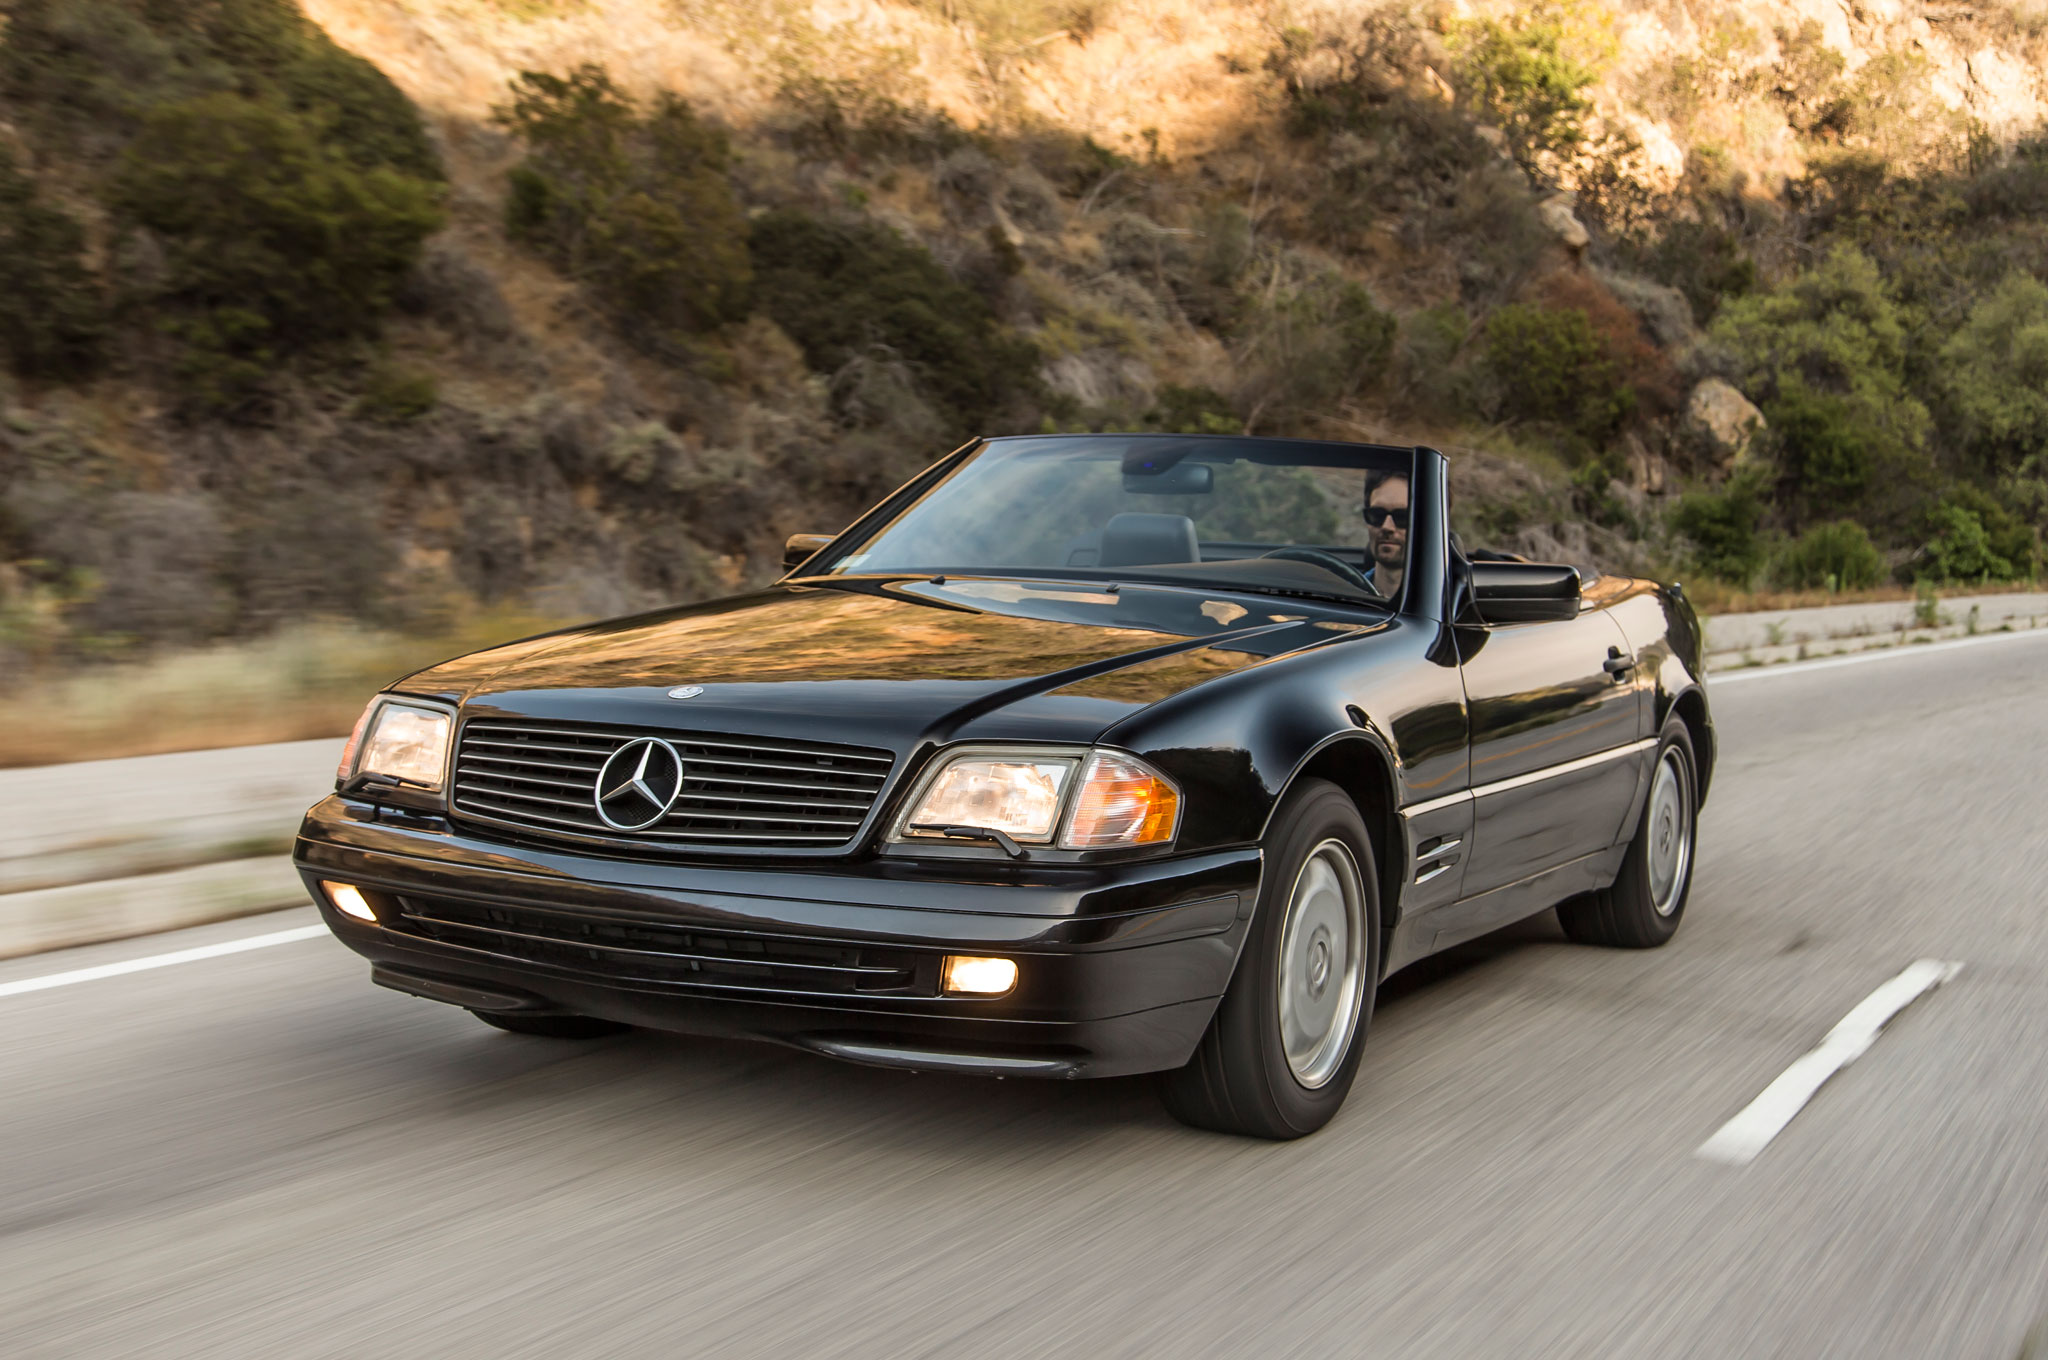 Collectible classic 1990 2002 mercedes benz sl class for Mercedes benz 1990